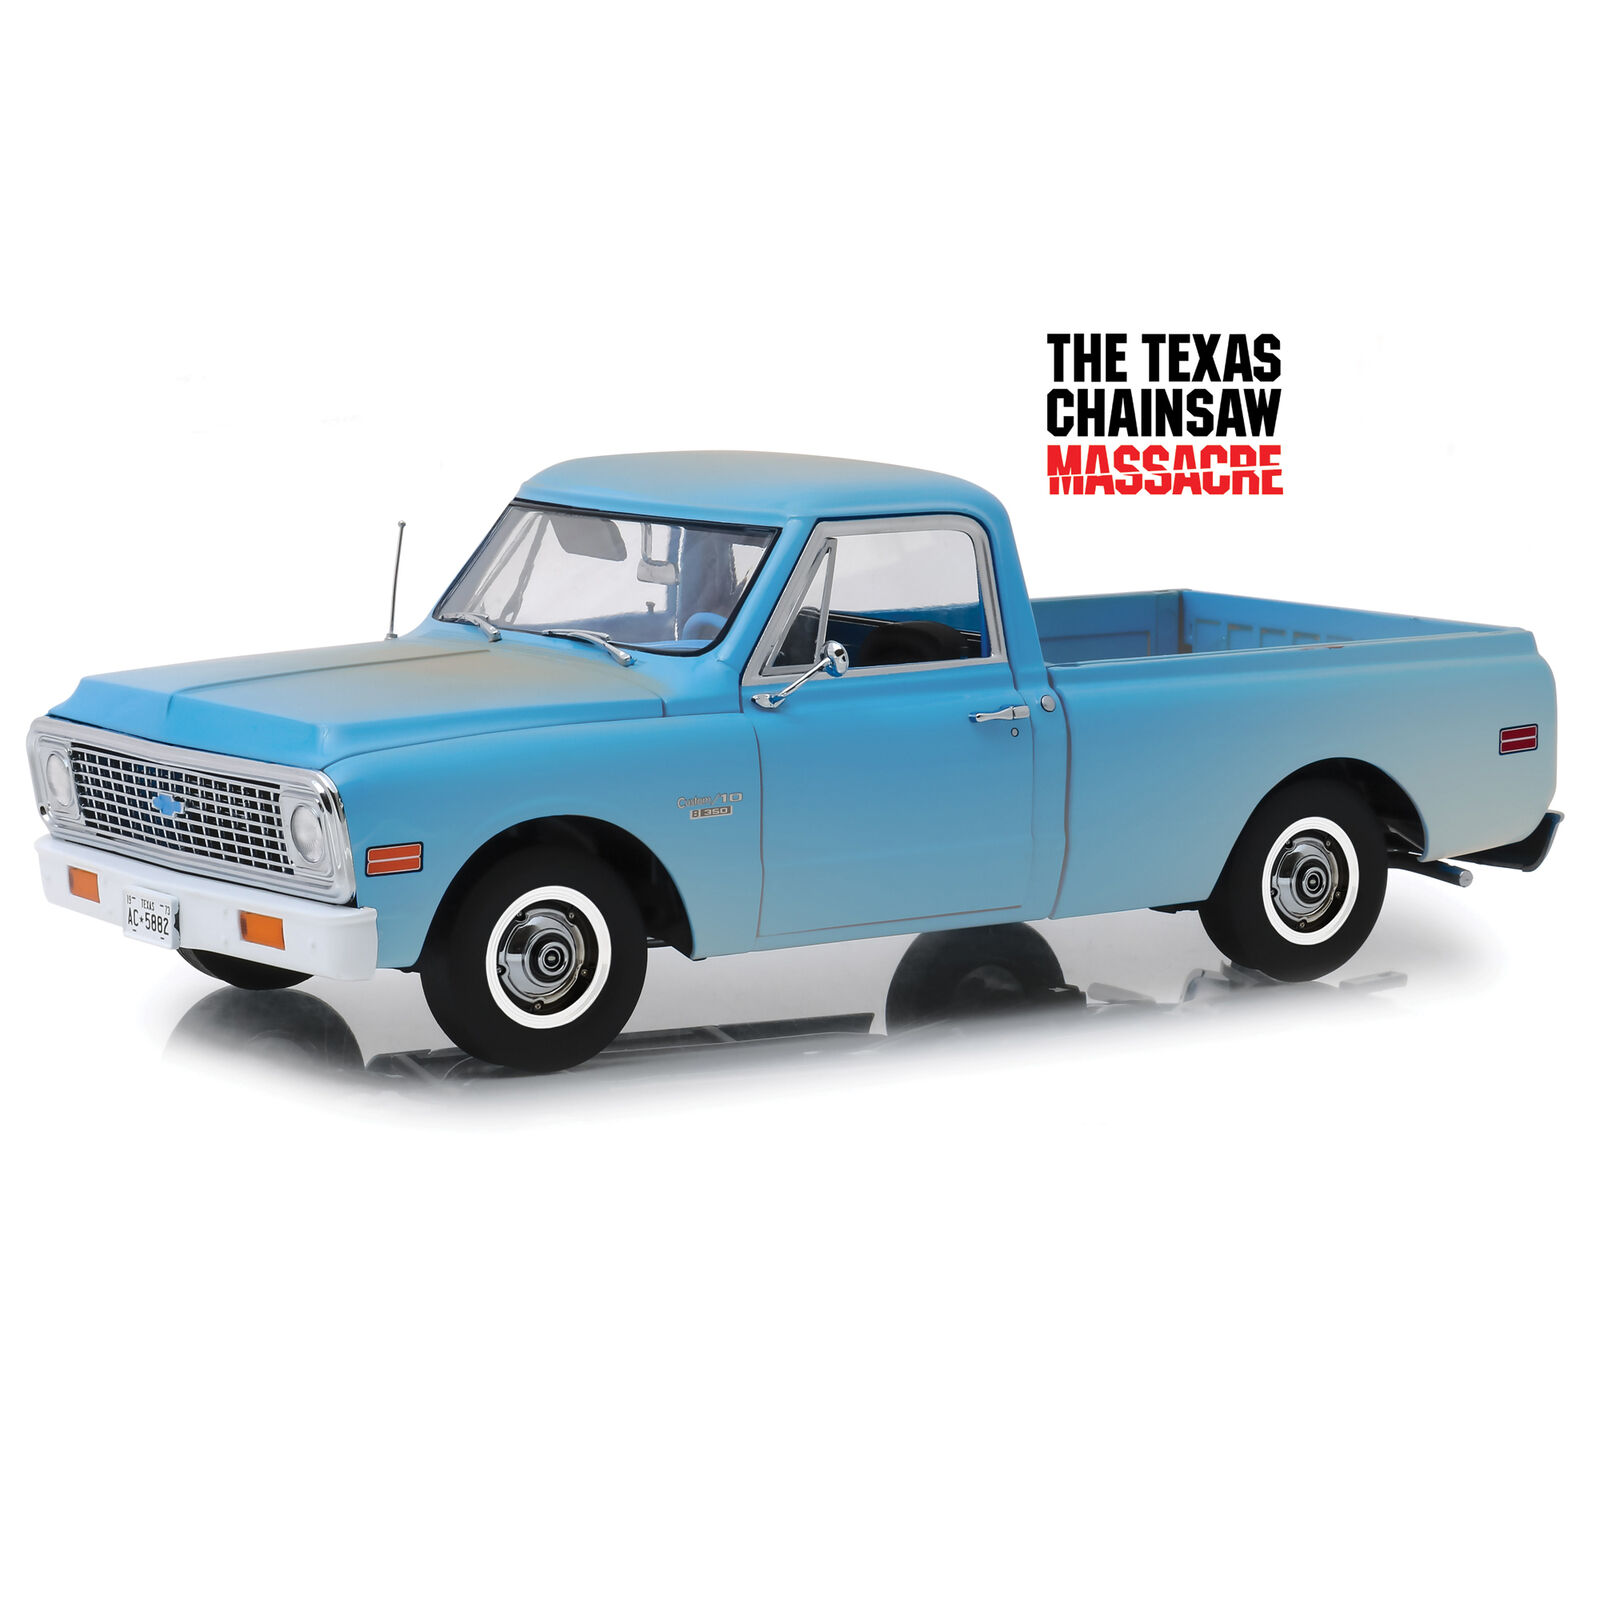 The Texas Chain Saw Massacre 1971 Chevrolet C10